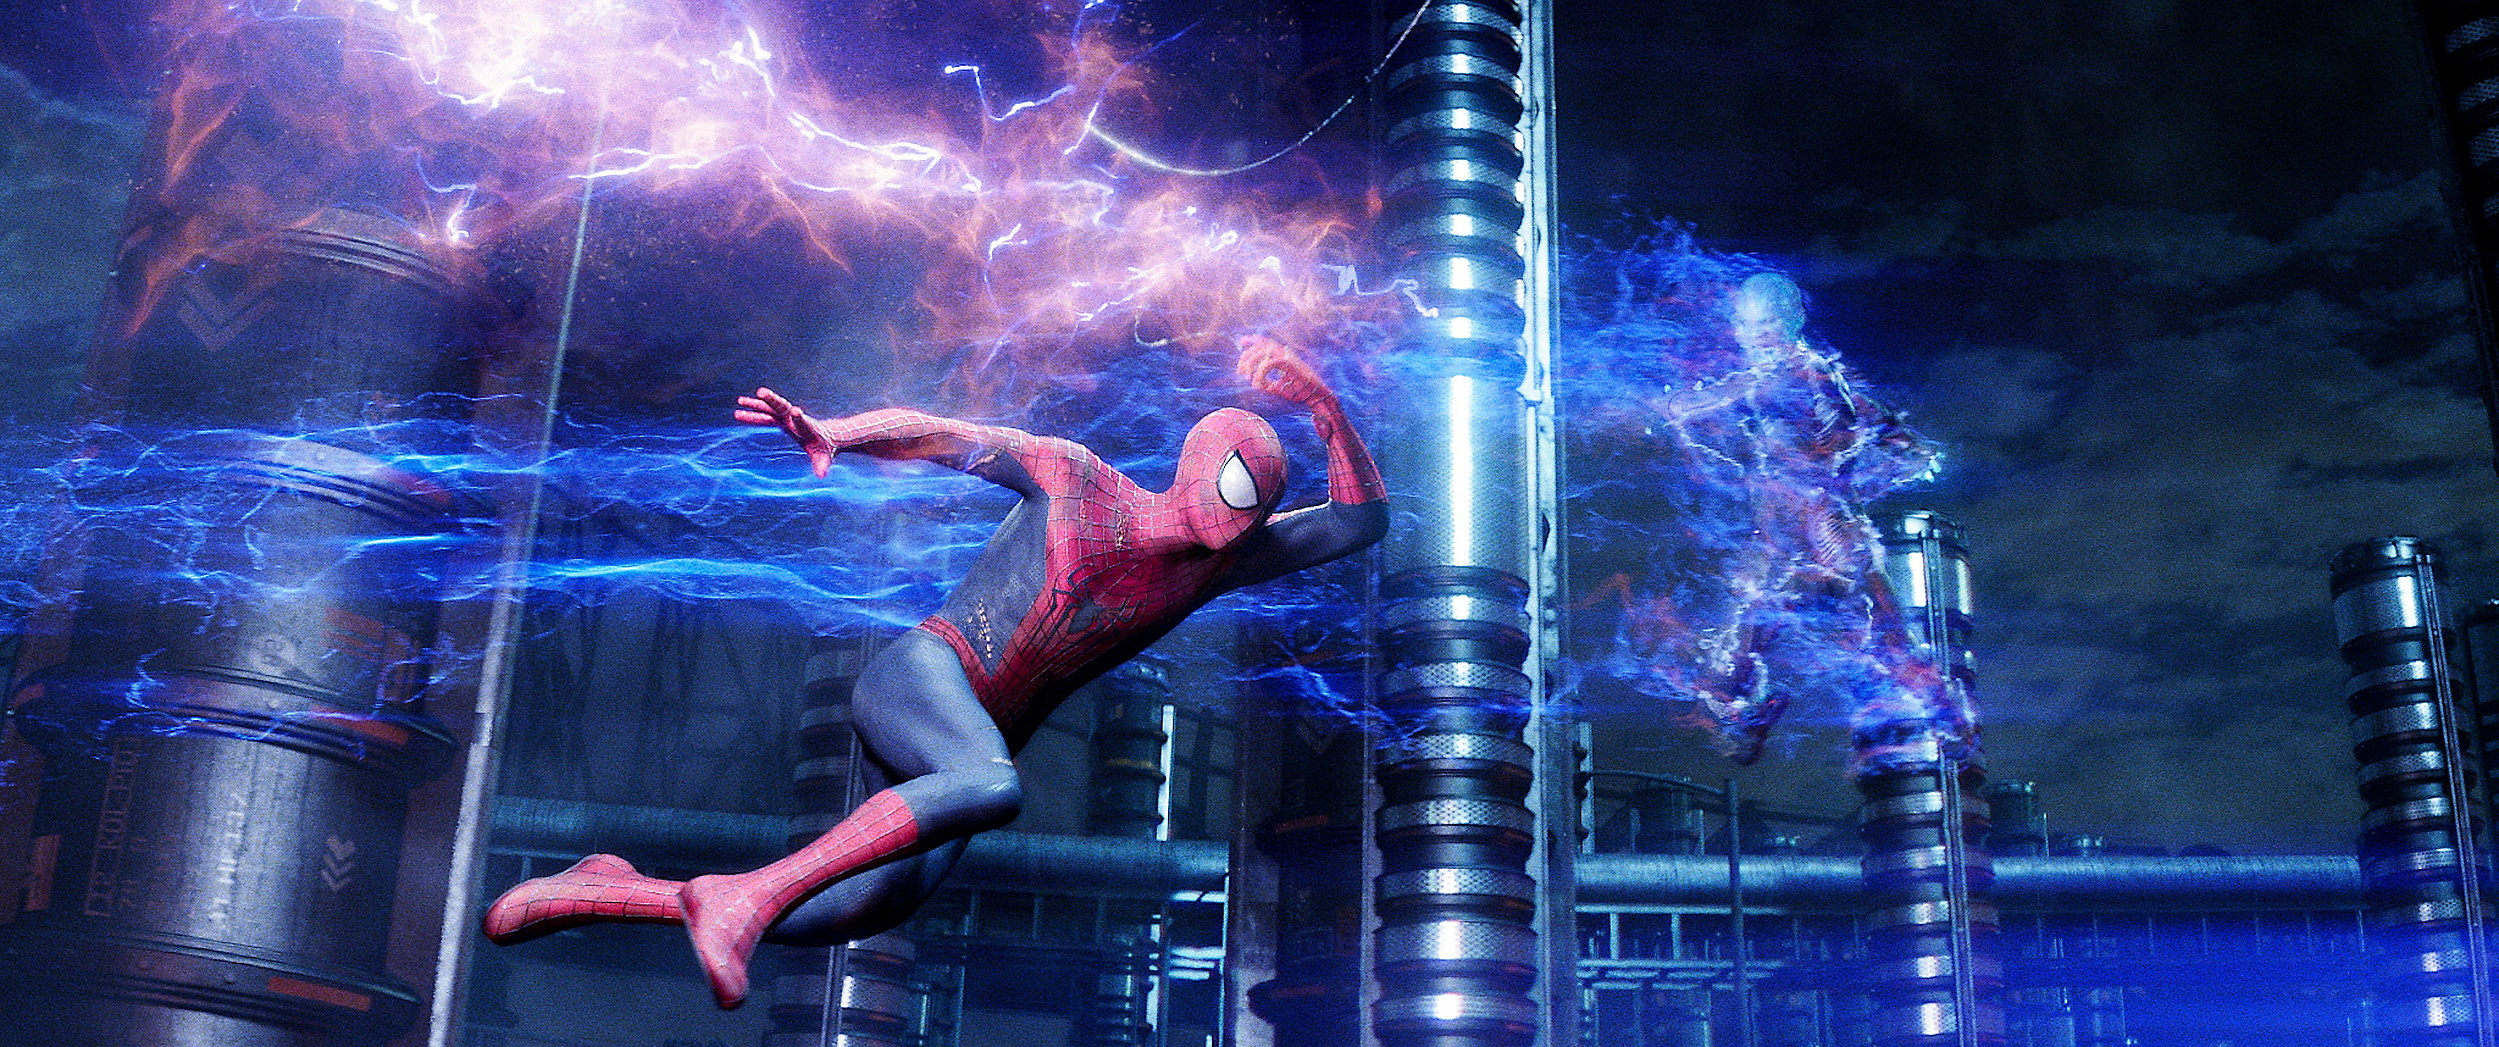 The Amazing-Spider 2 Photos